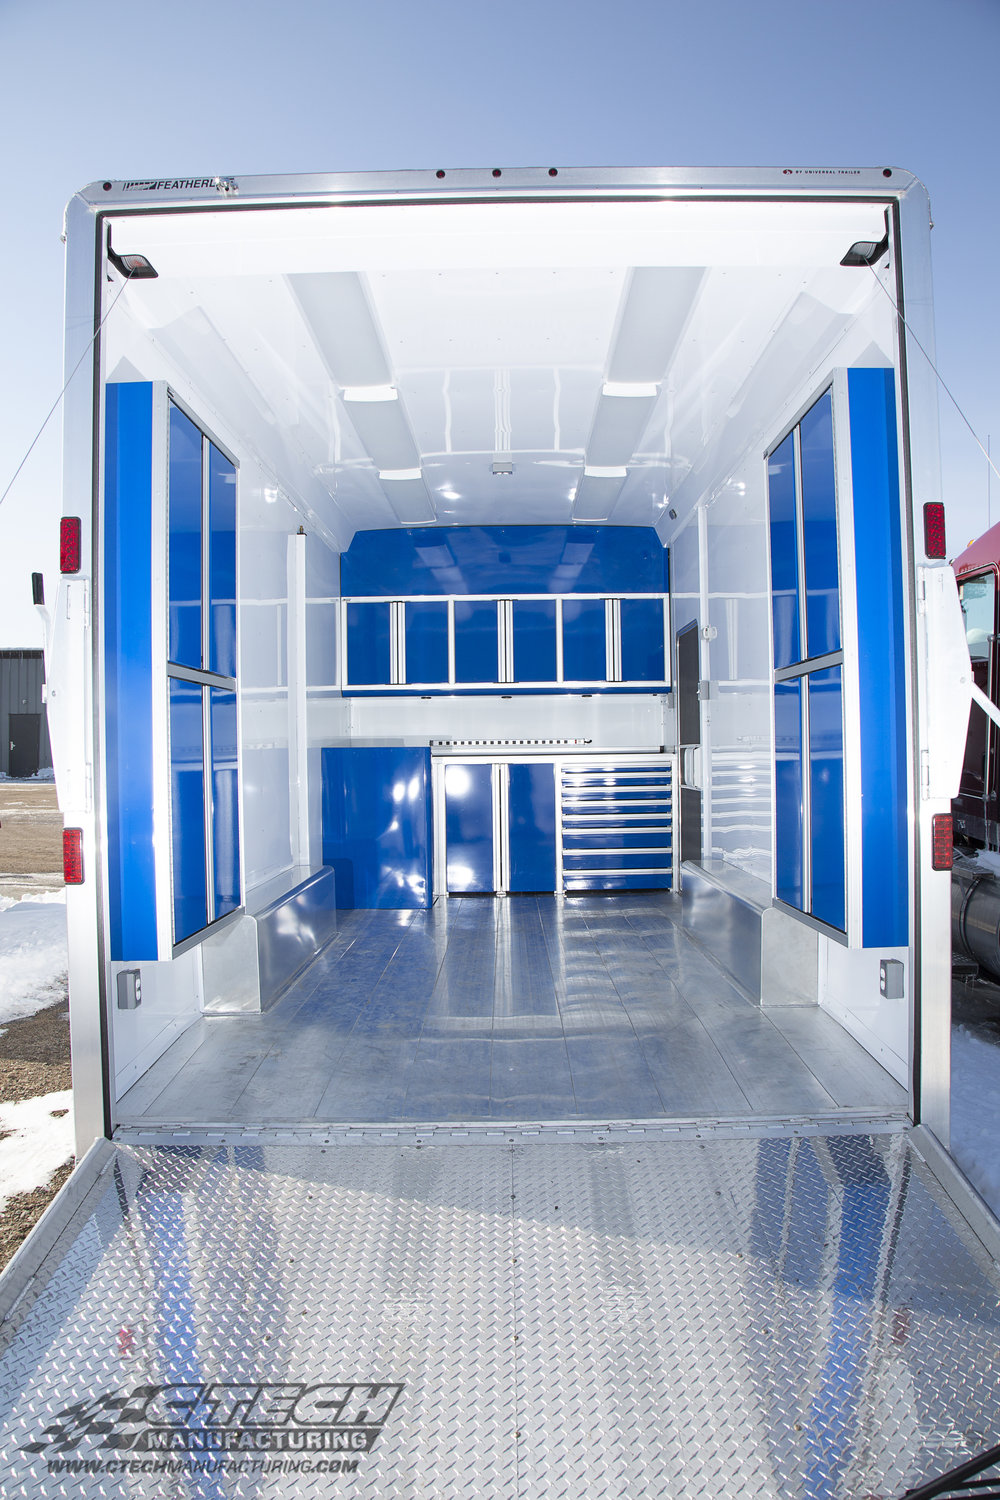 Dedicated trailer storage is often overlooked, but adding lightweight CTECH P Series cabinets to your trailer are a quick and easy way to squeeze more storage potential out of your limited space, effectively adding workspace capability. Optional LED lighting is also a great add-on for low-light loading/unloading. BOM 43753